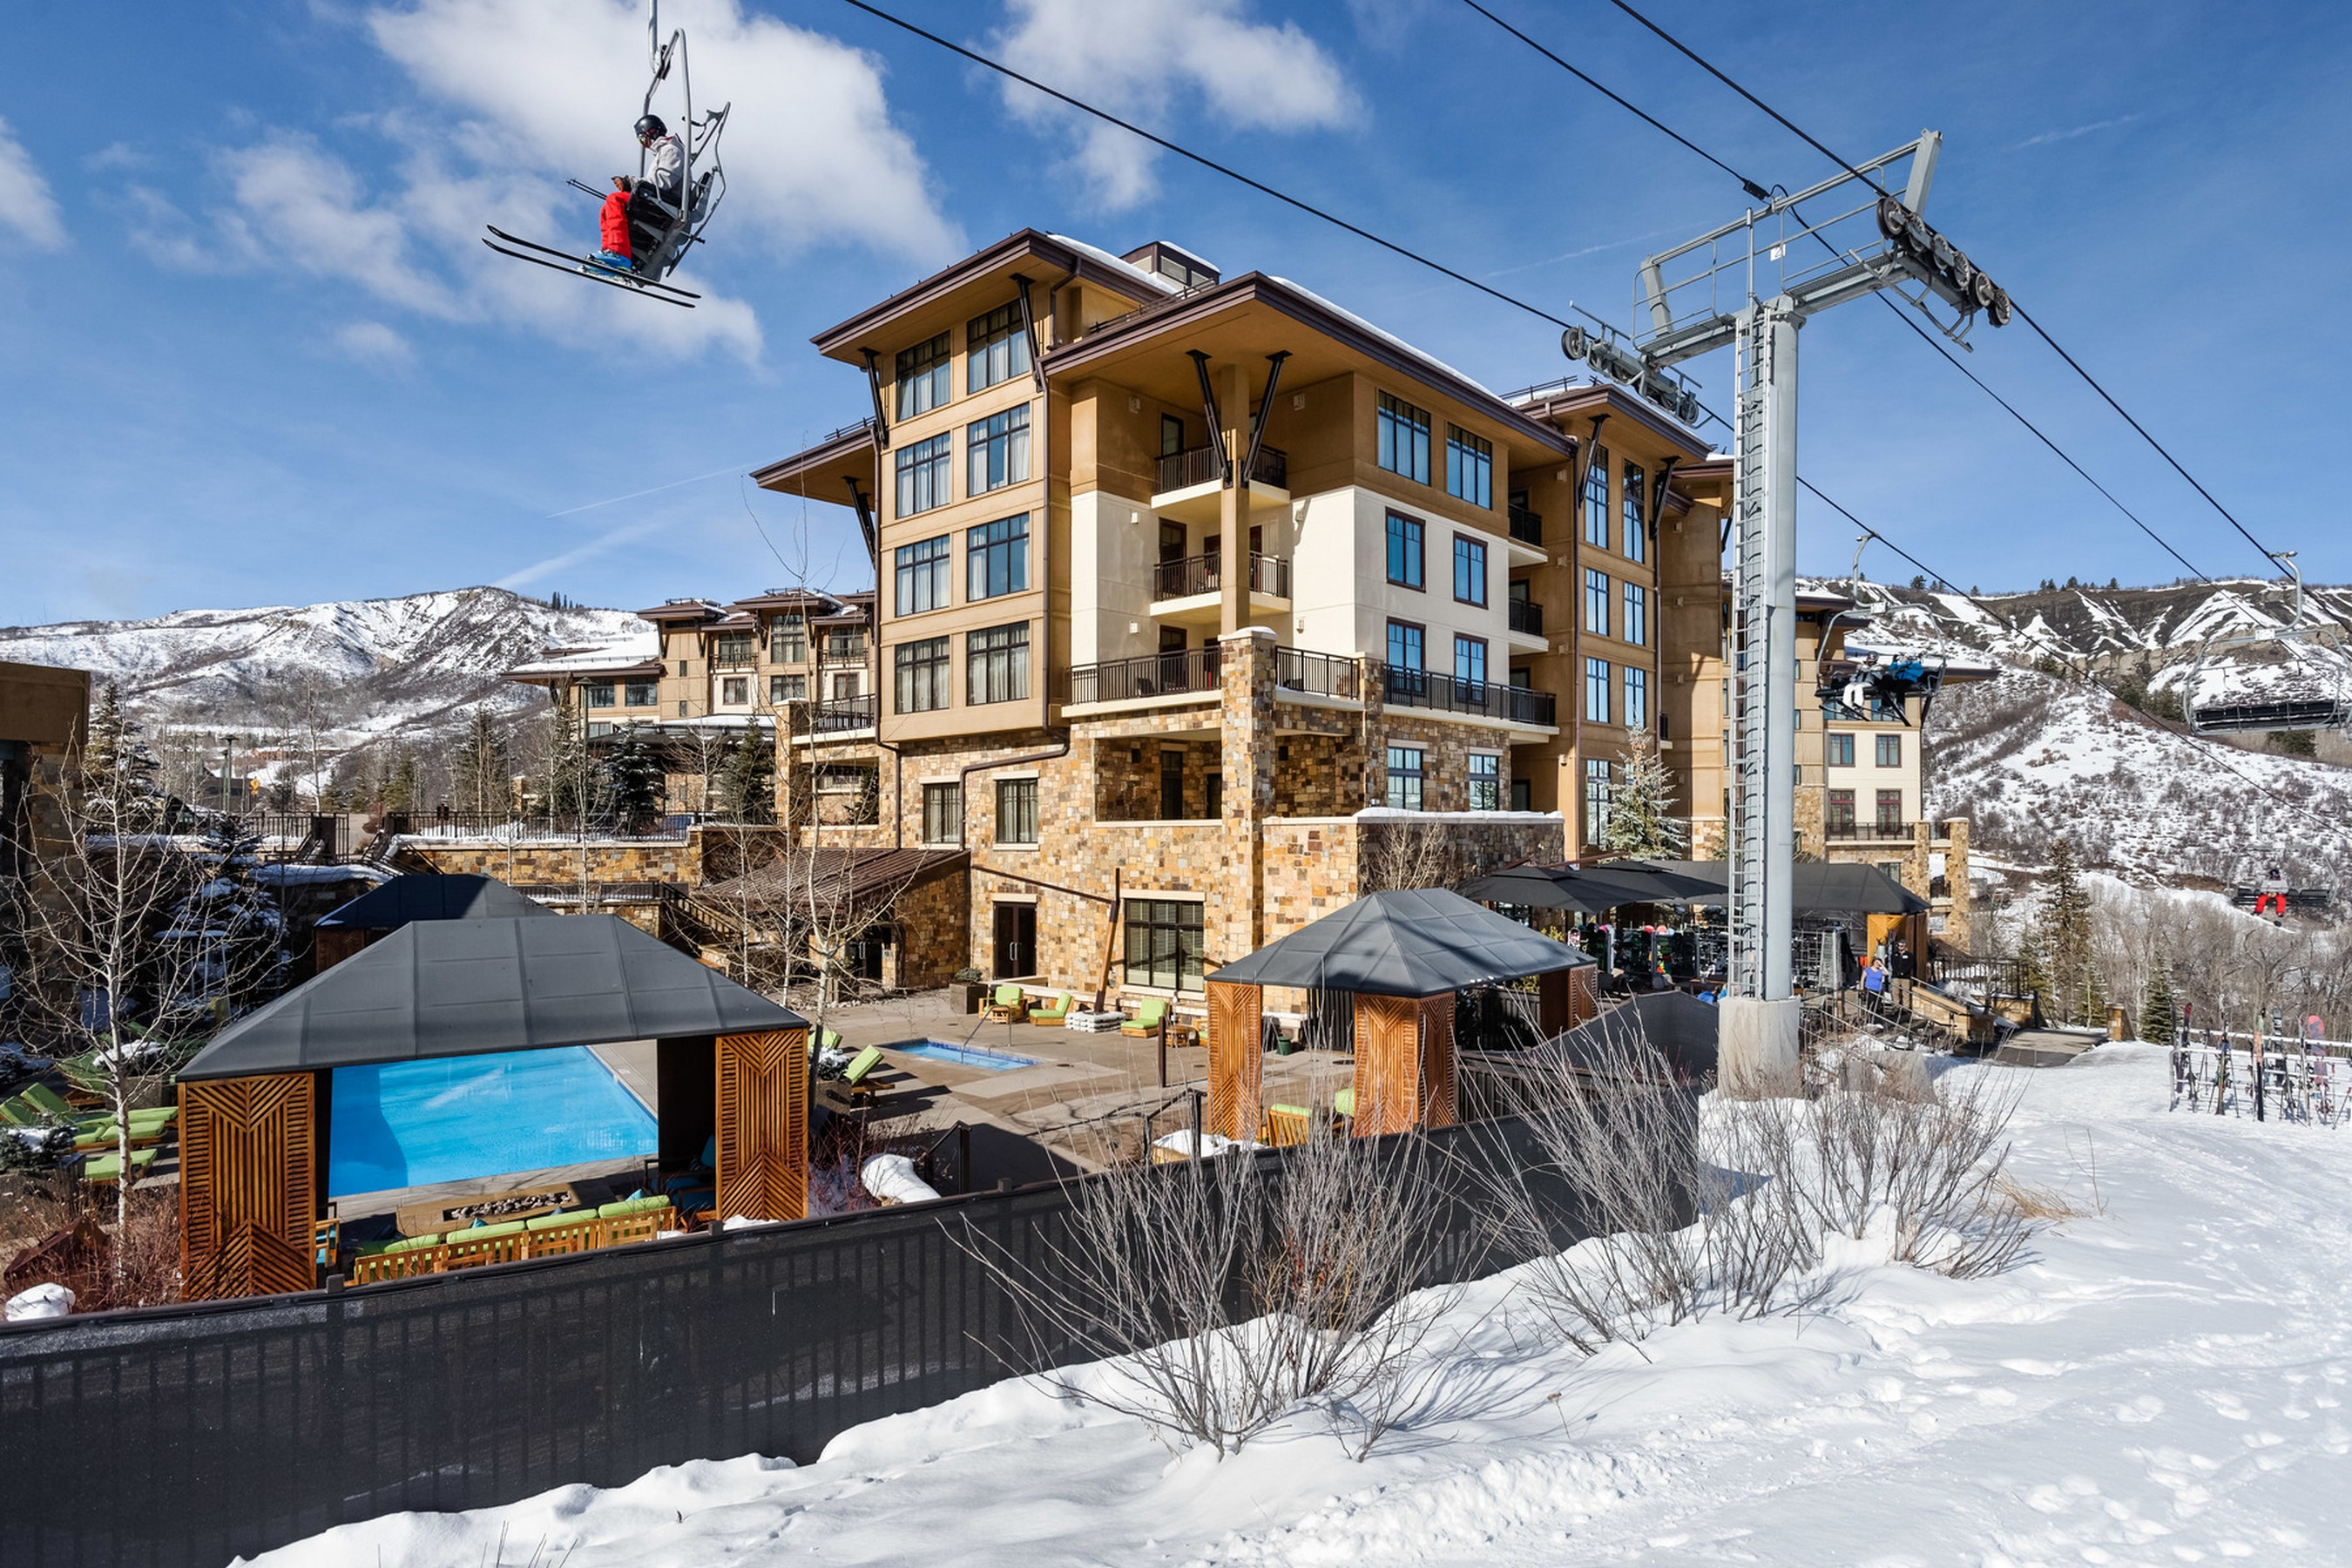 130 Wood Road, unit 214 Snowmass Village Photo 27